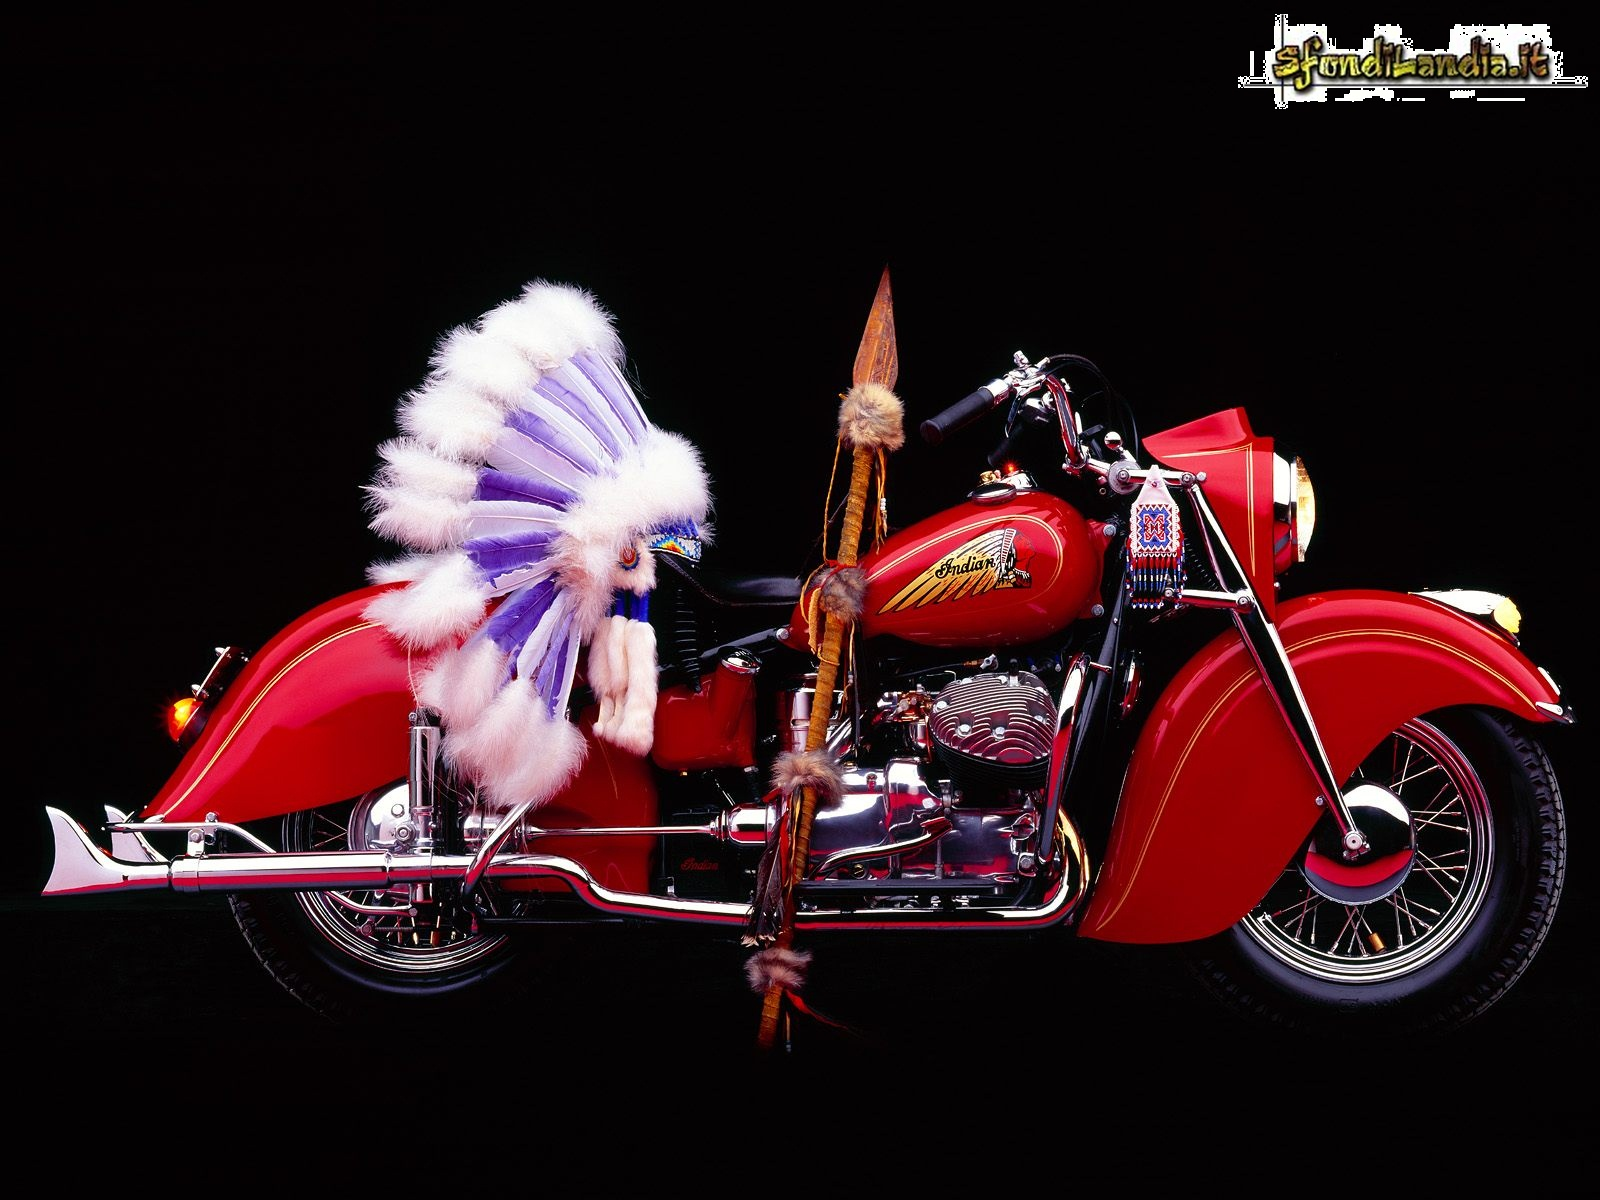 841 Indian Motorcycle